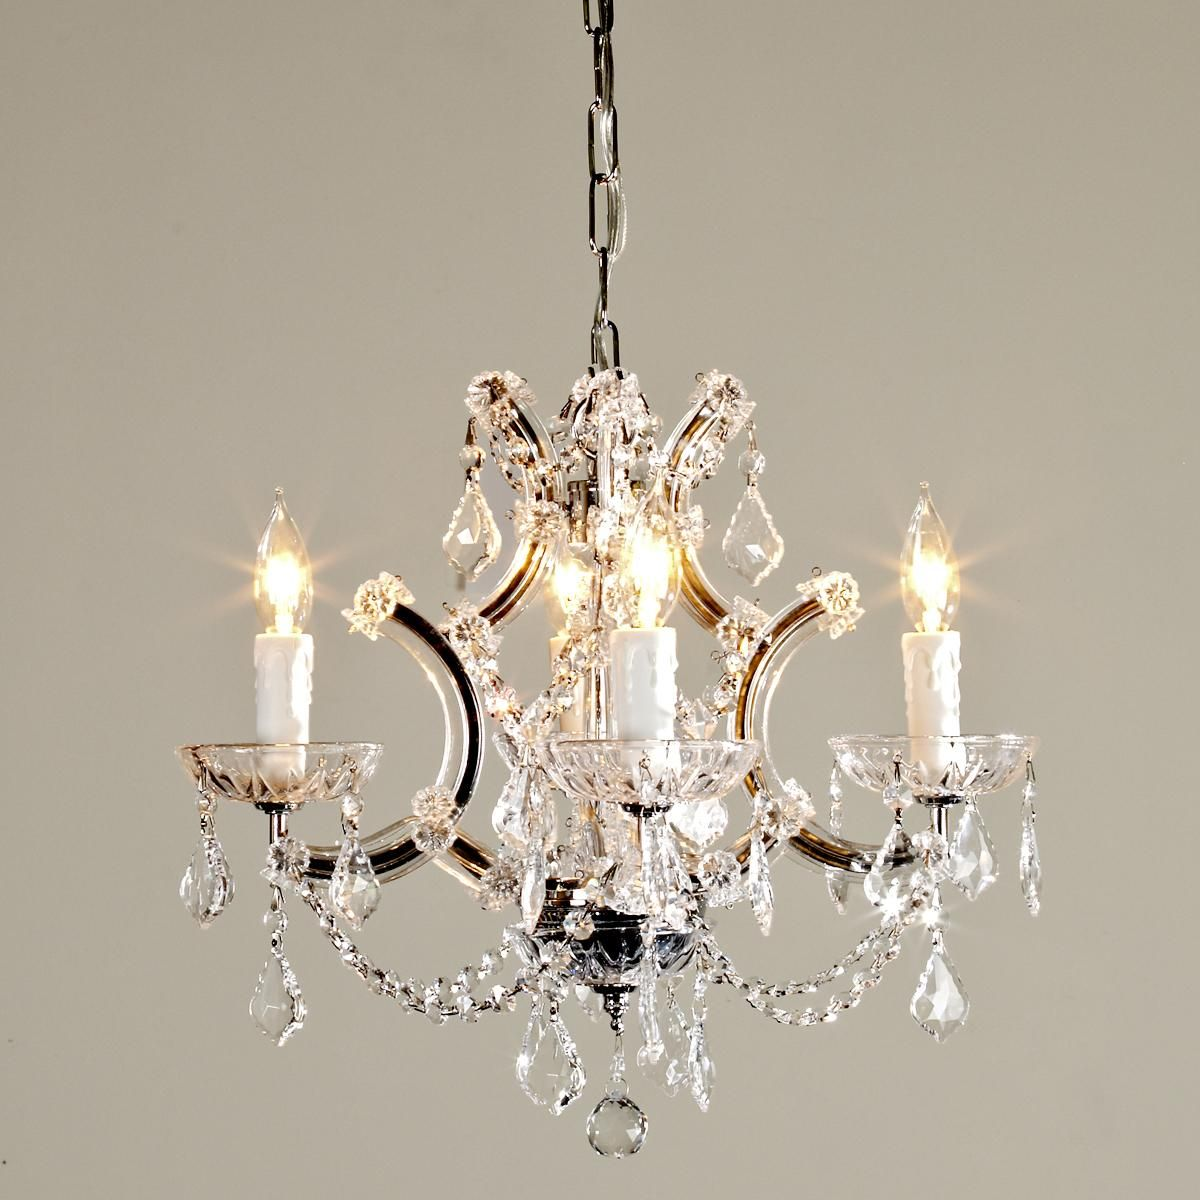 Round Crystal Chandelier Cute But It Says Mini Size Would That